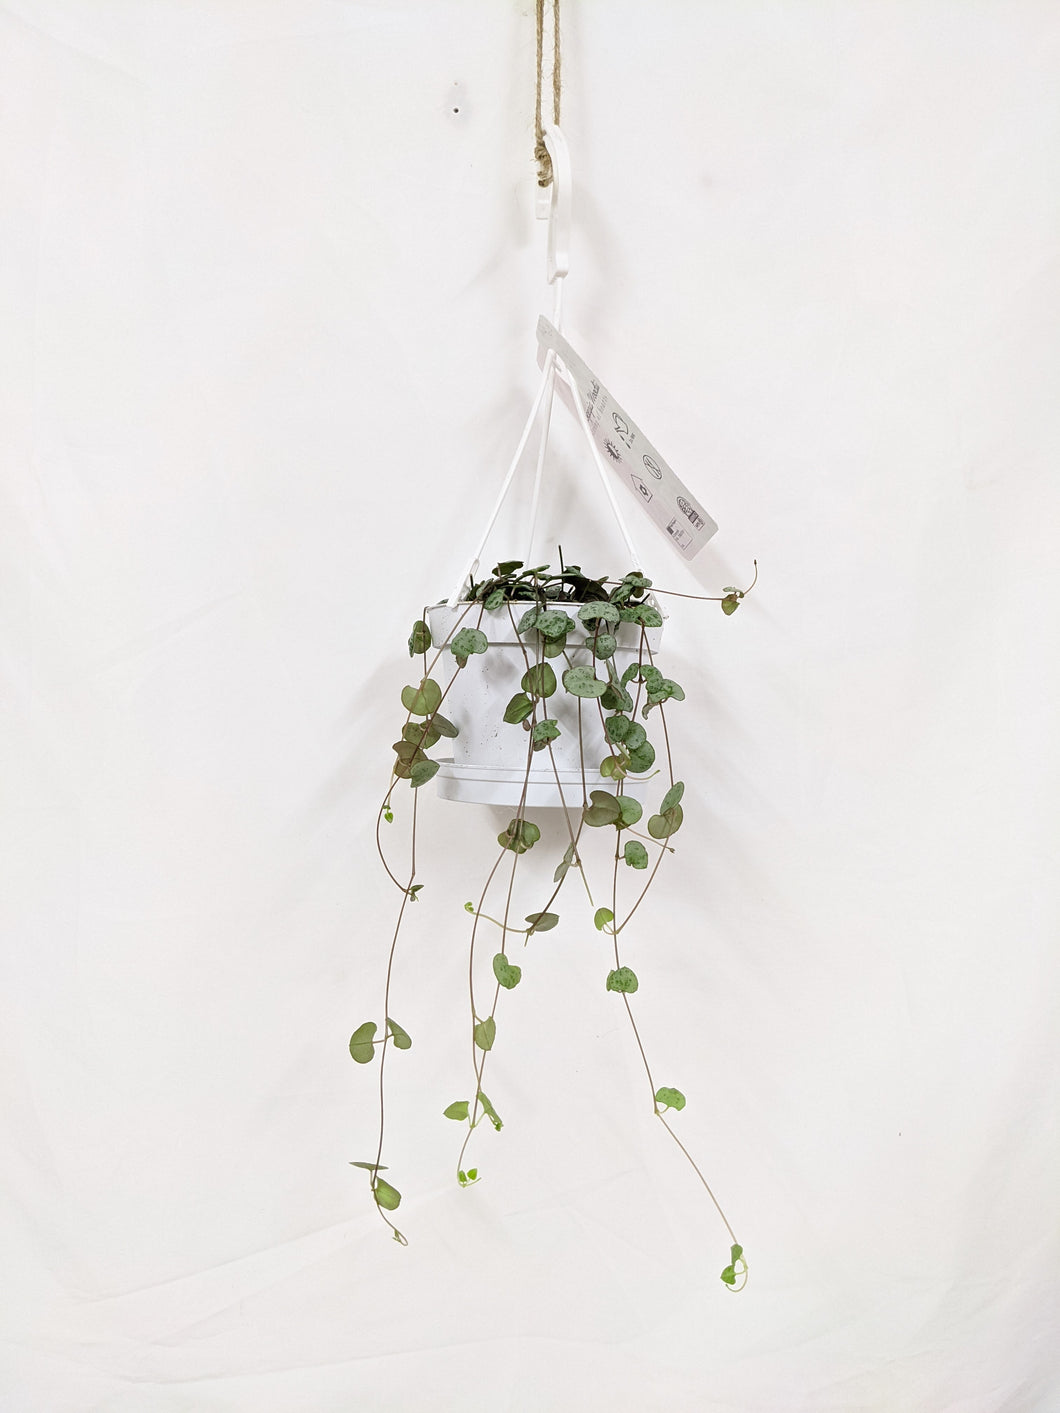 Ceropegia woodii / 'string of hearts' hangpot 11cm